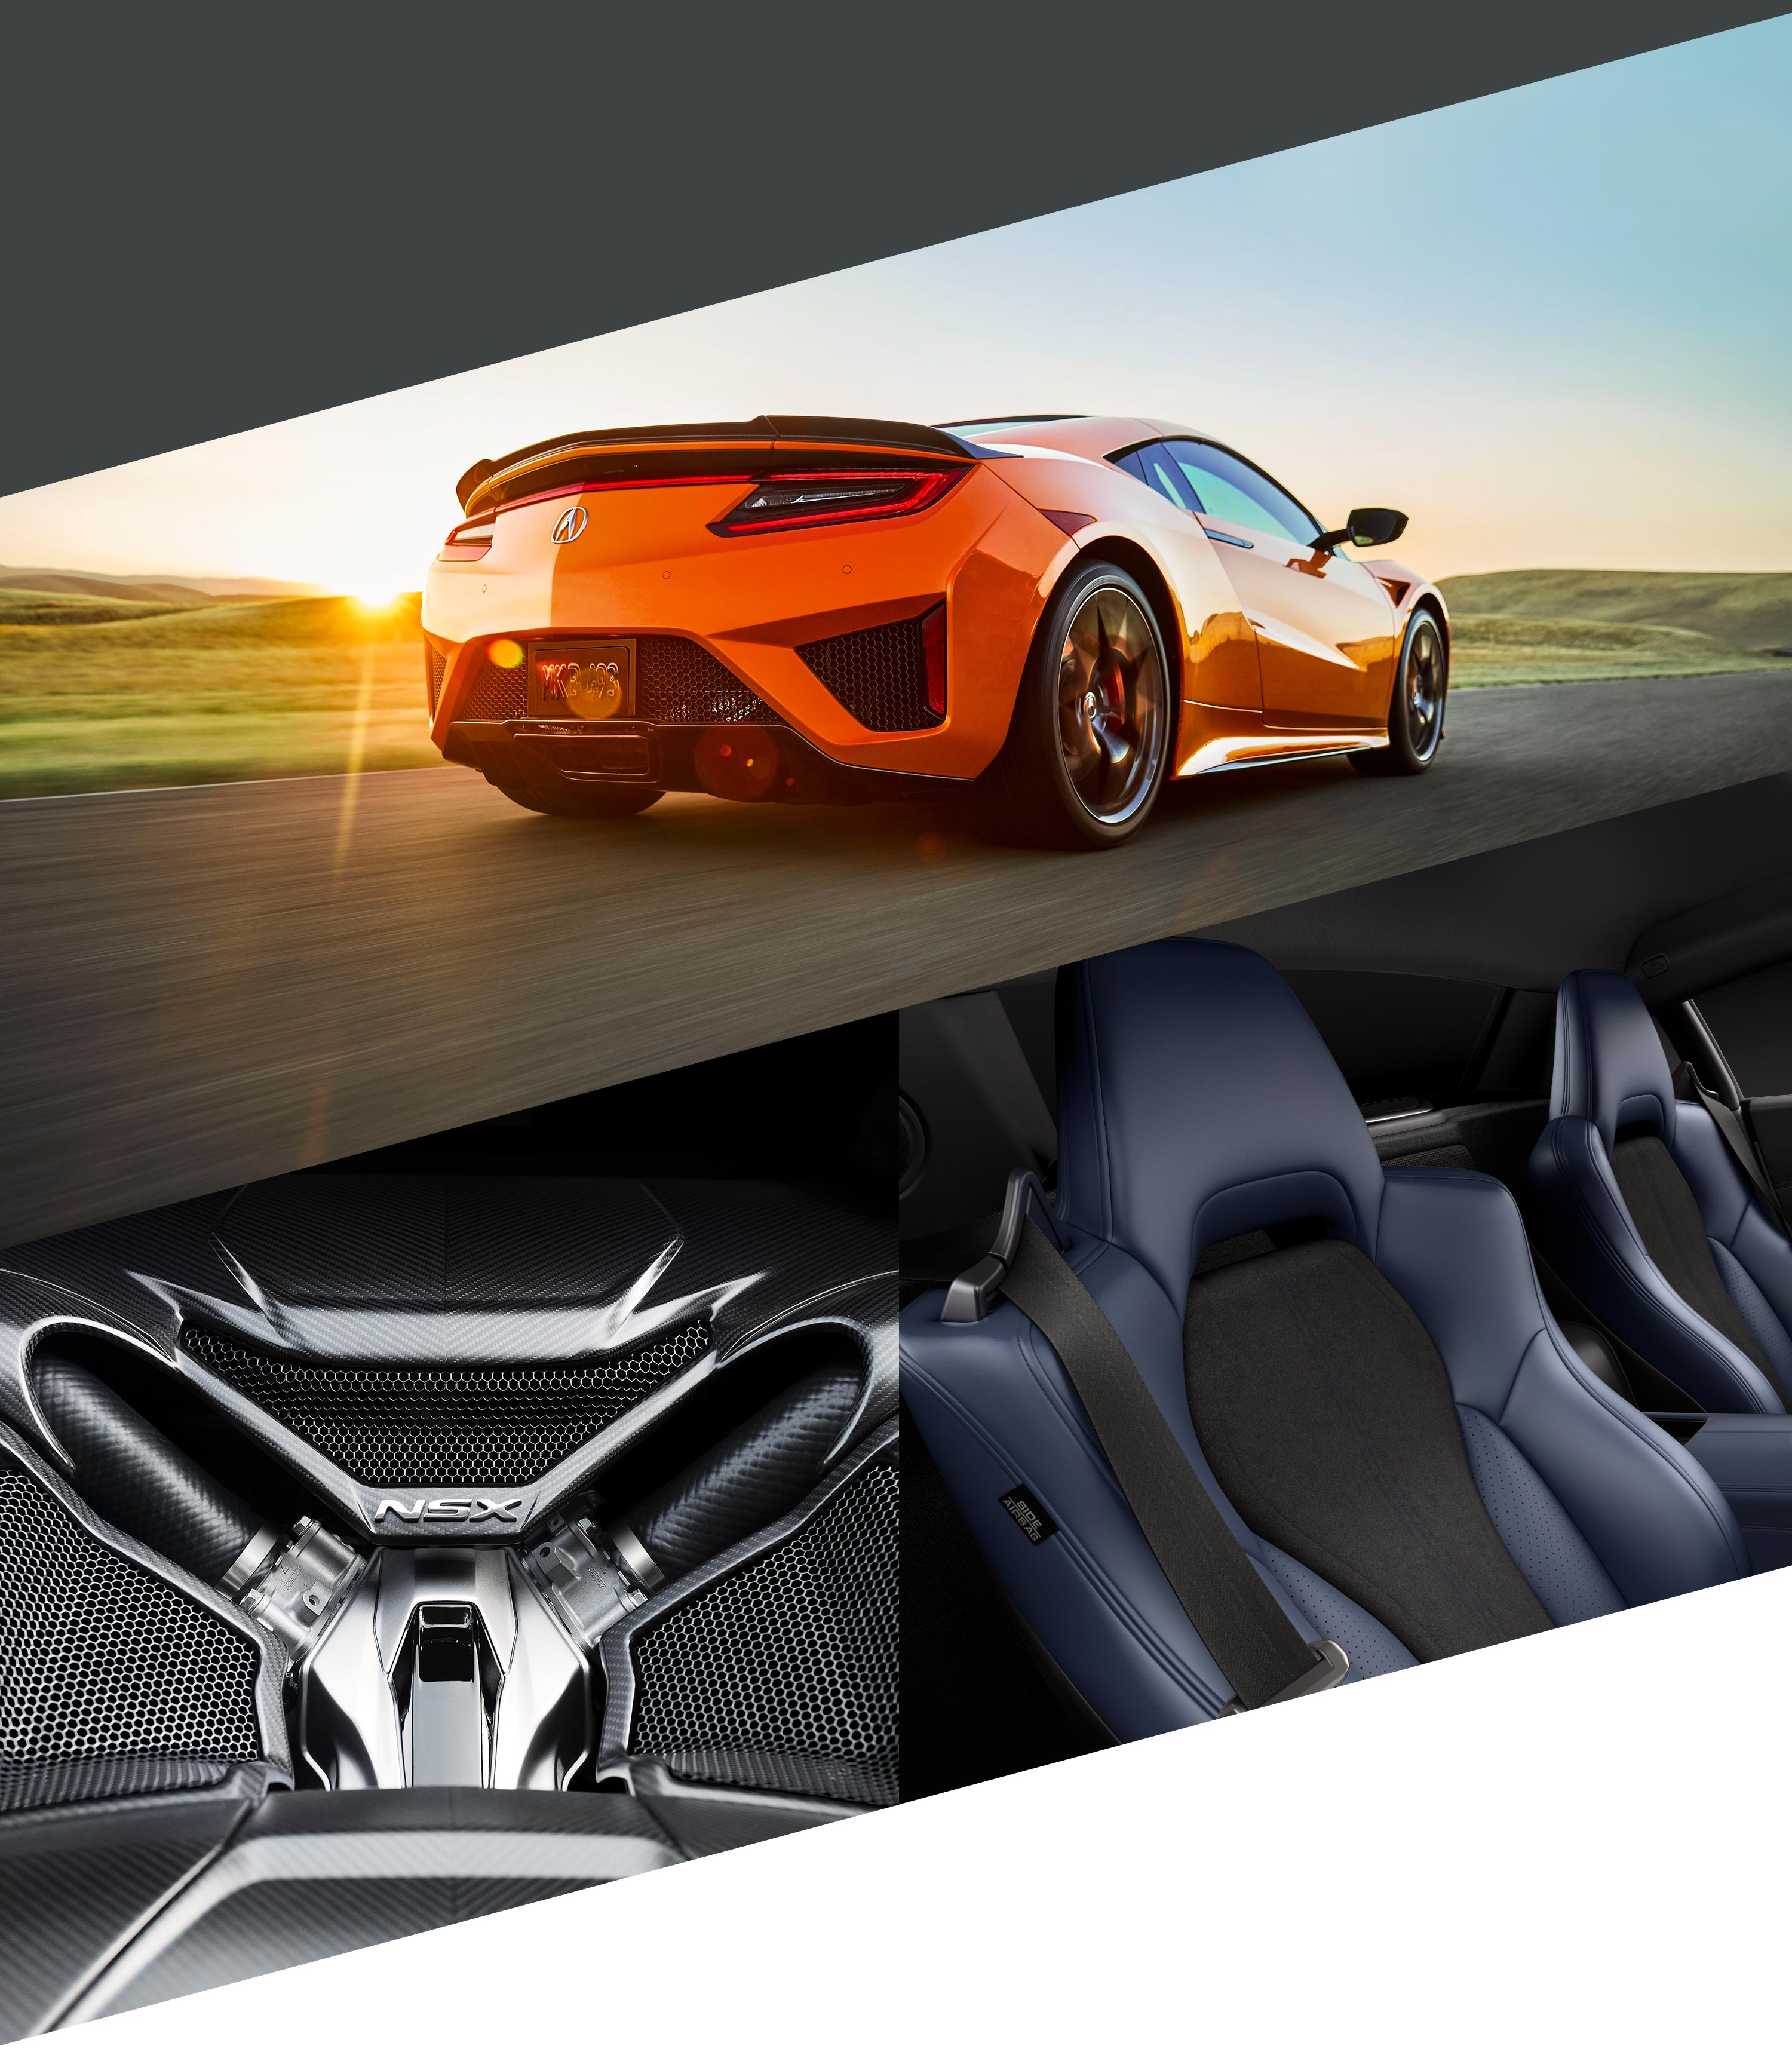 2020 Acura NSX Collage